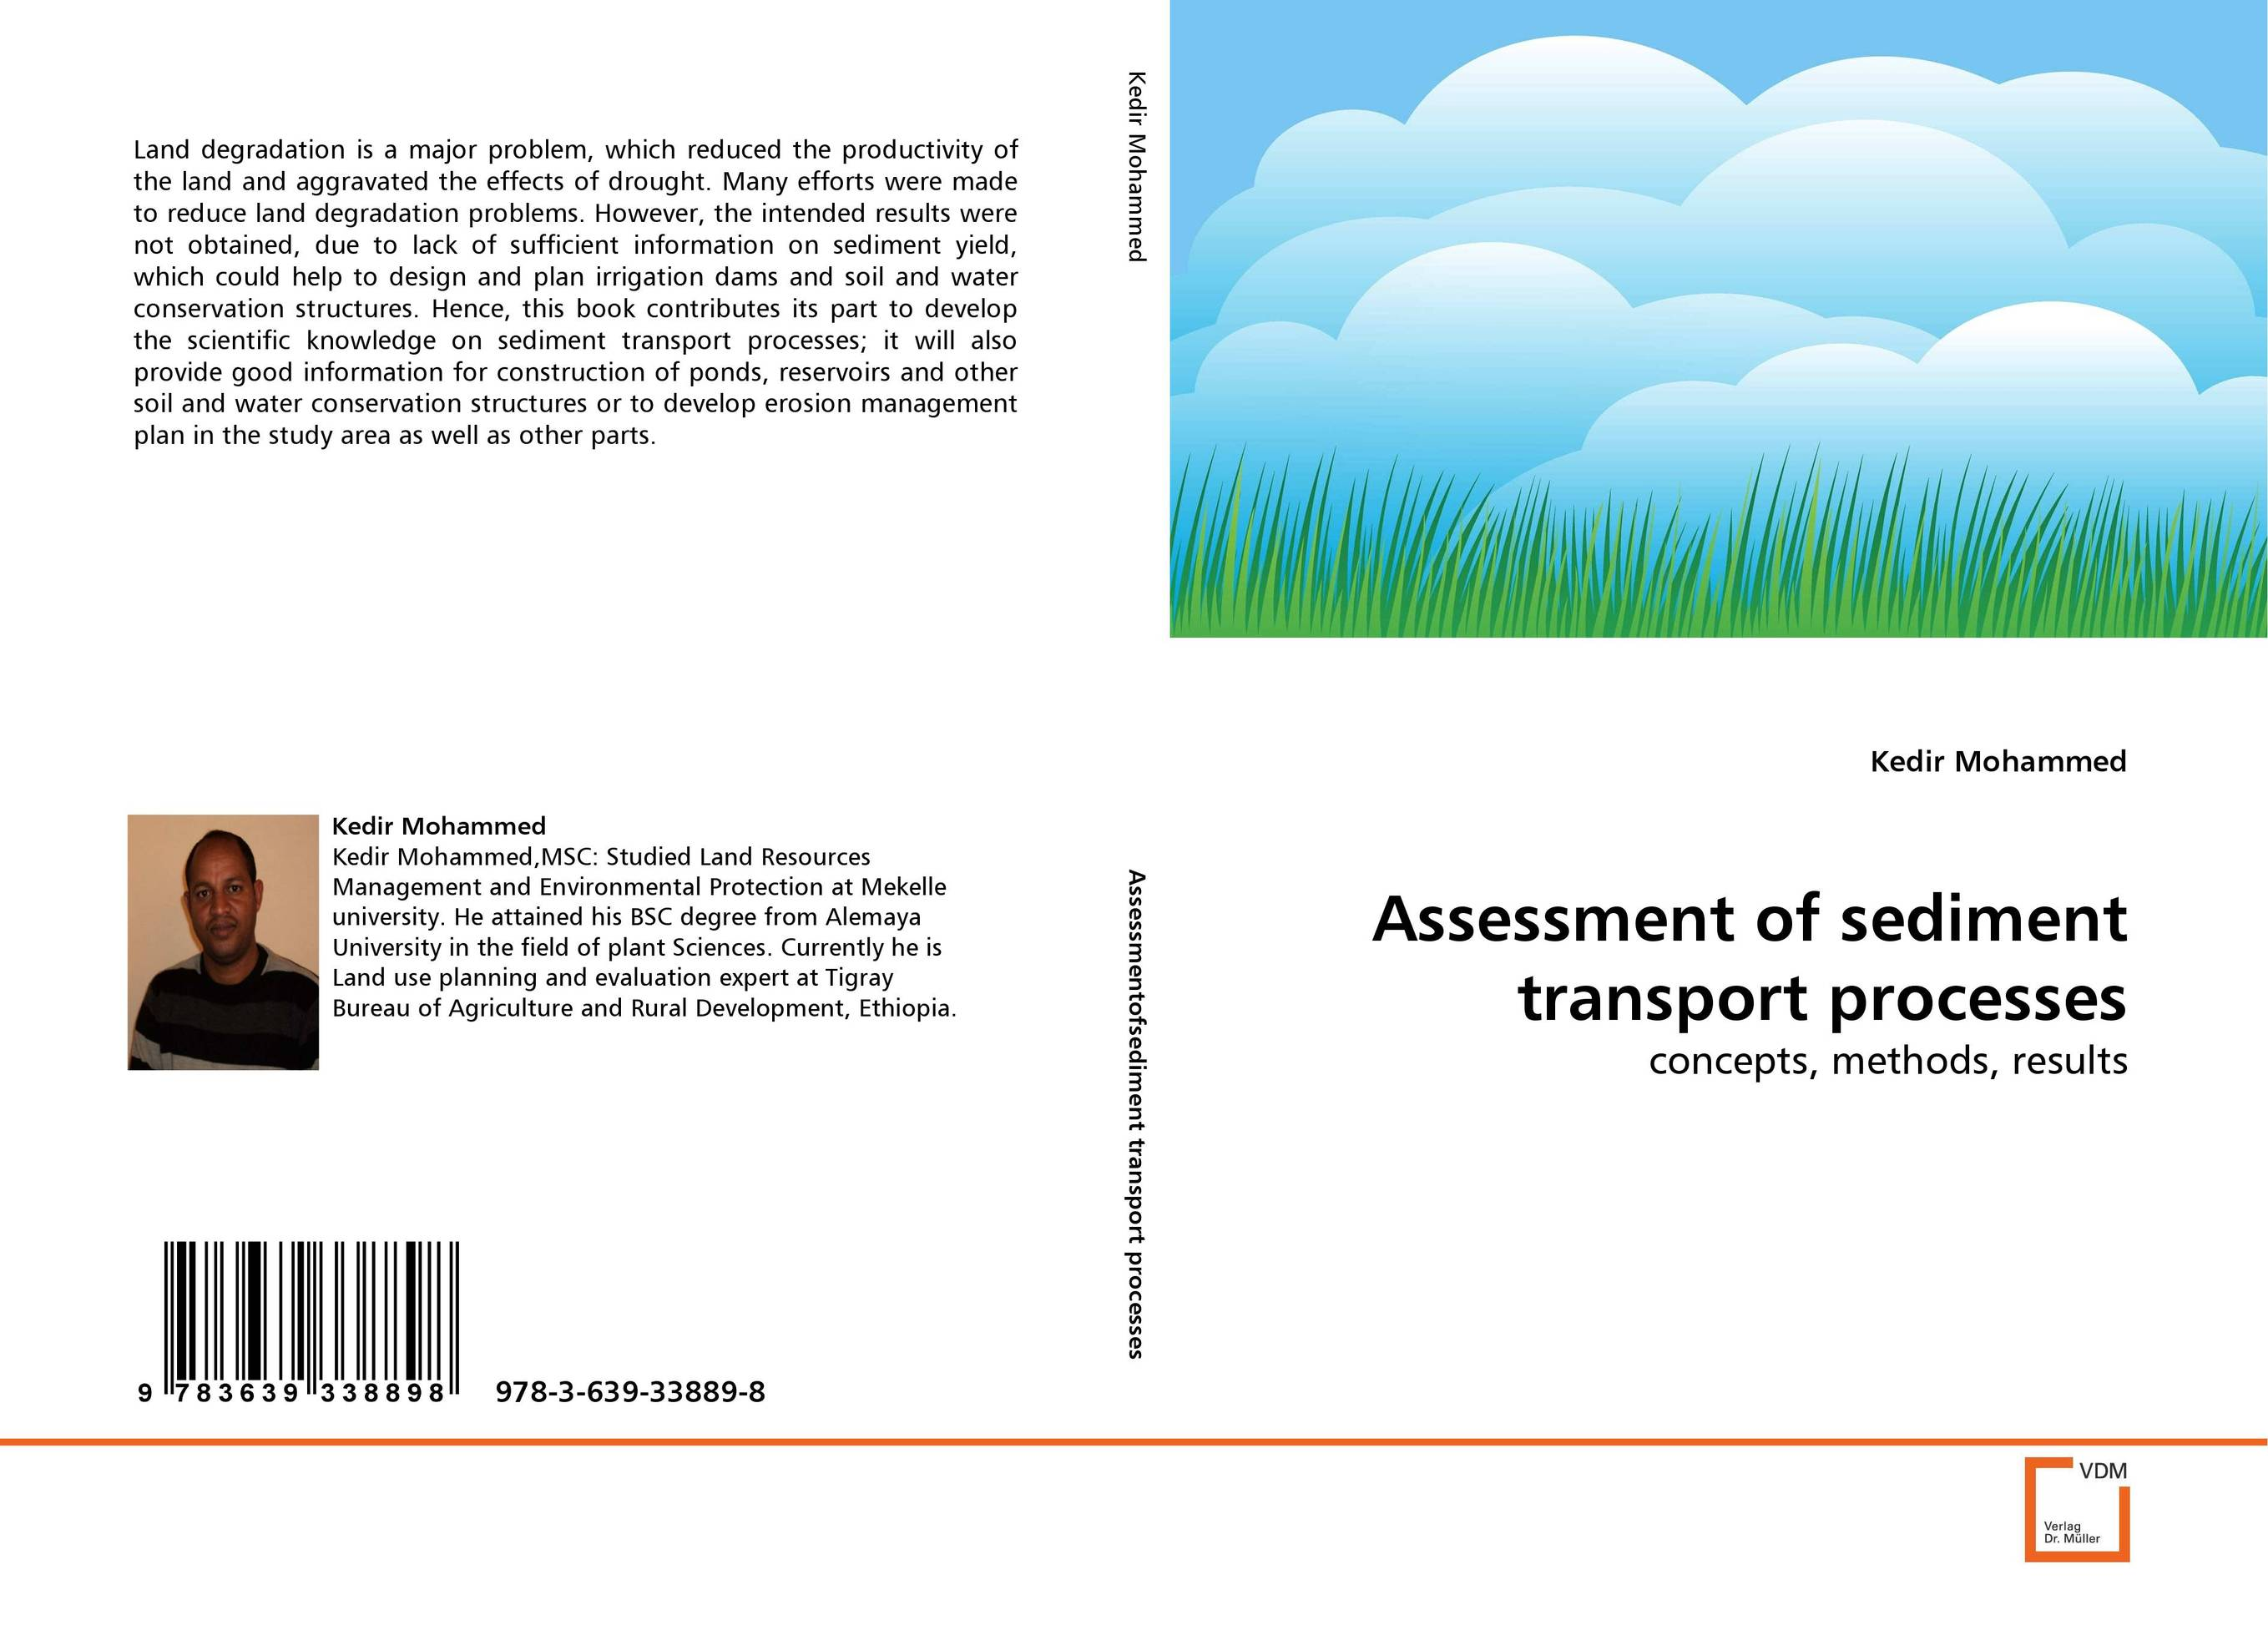 Assessment of sediment transport processes assessment of land degradation and its restoration in jharia coalfield